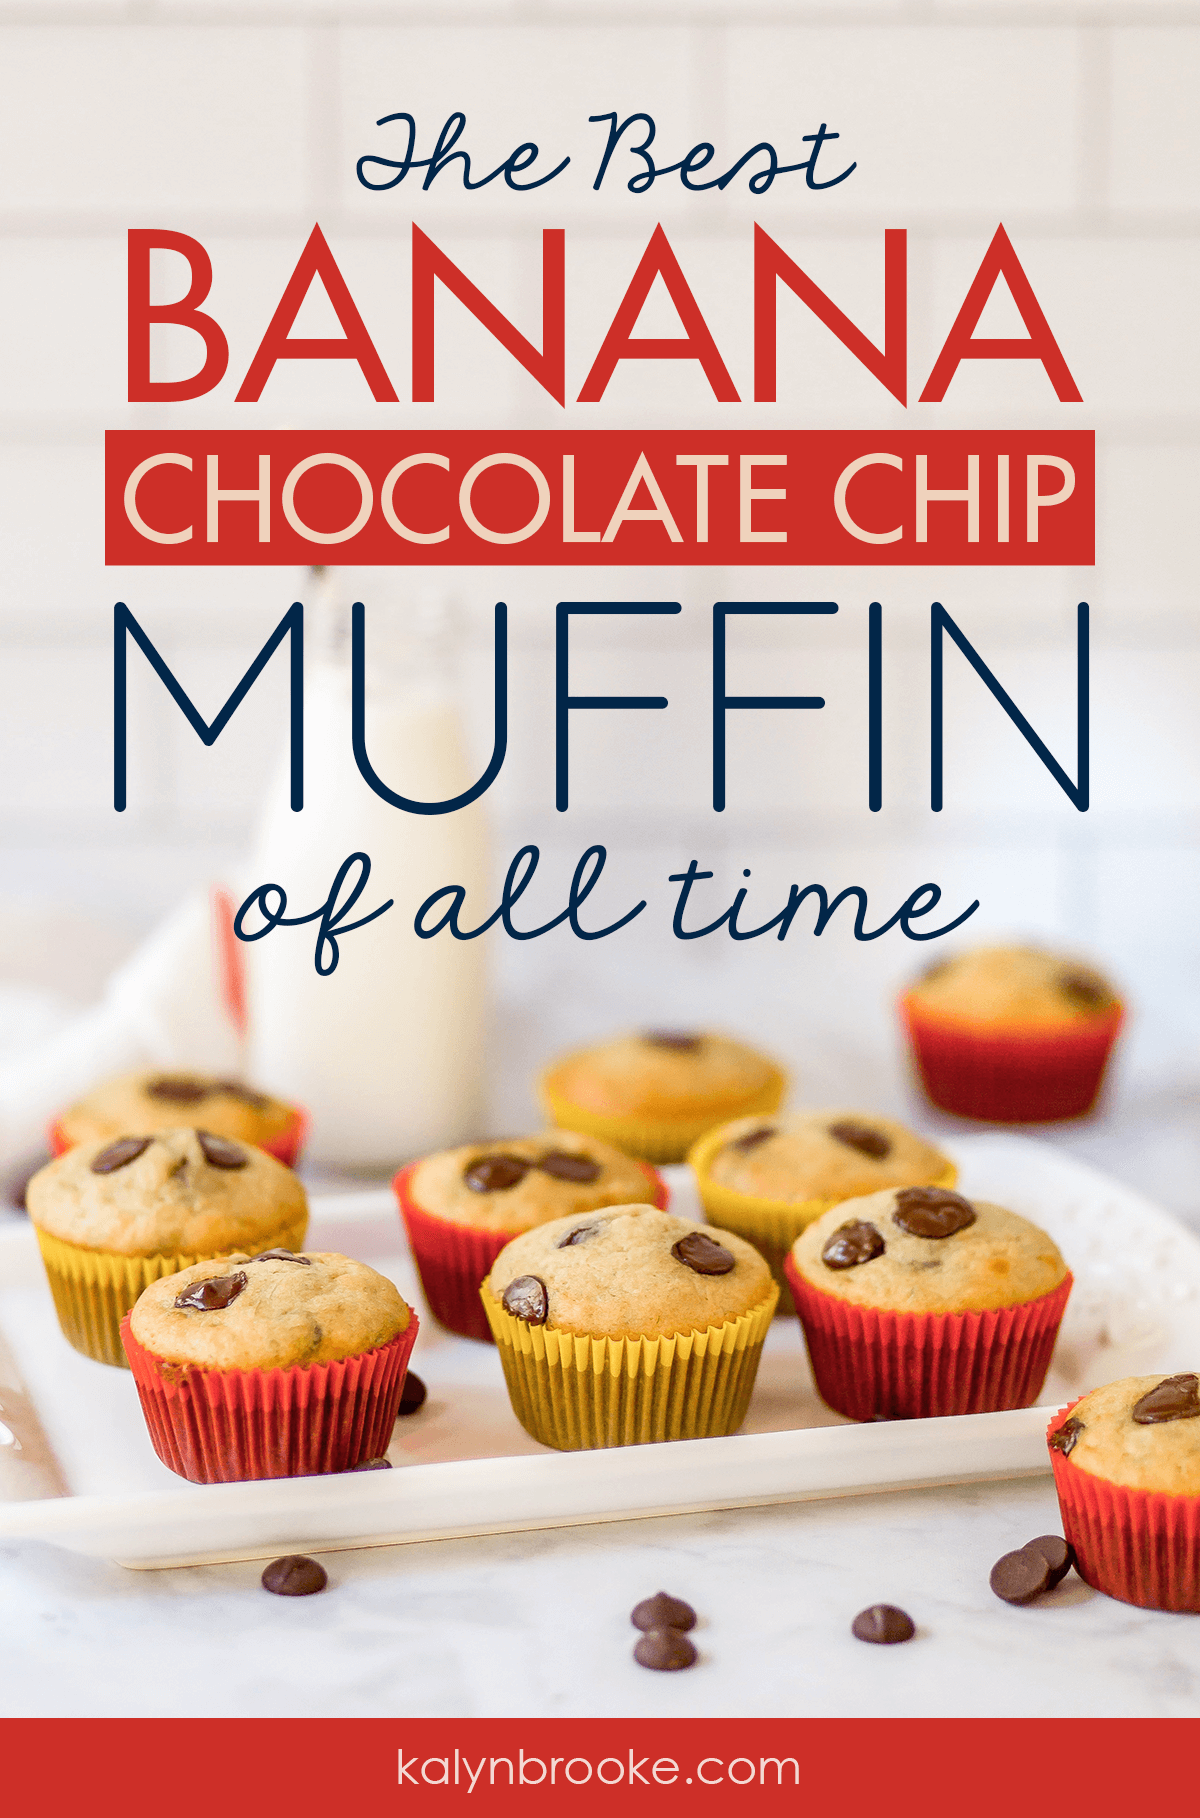 I've been searching for a filling, on-the-go breakfast and finally found it in these muffins! I make a dozen or two on the weekend and I'm good to go all week! Plus, now I know what to do with those overripe bananas I seem to always have on hand! #muffinrecipe #easymuffinrecipe #bananachocolatechipmuffin #chocolatechipmuffin #bananamuffinrecipe